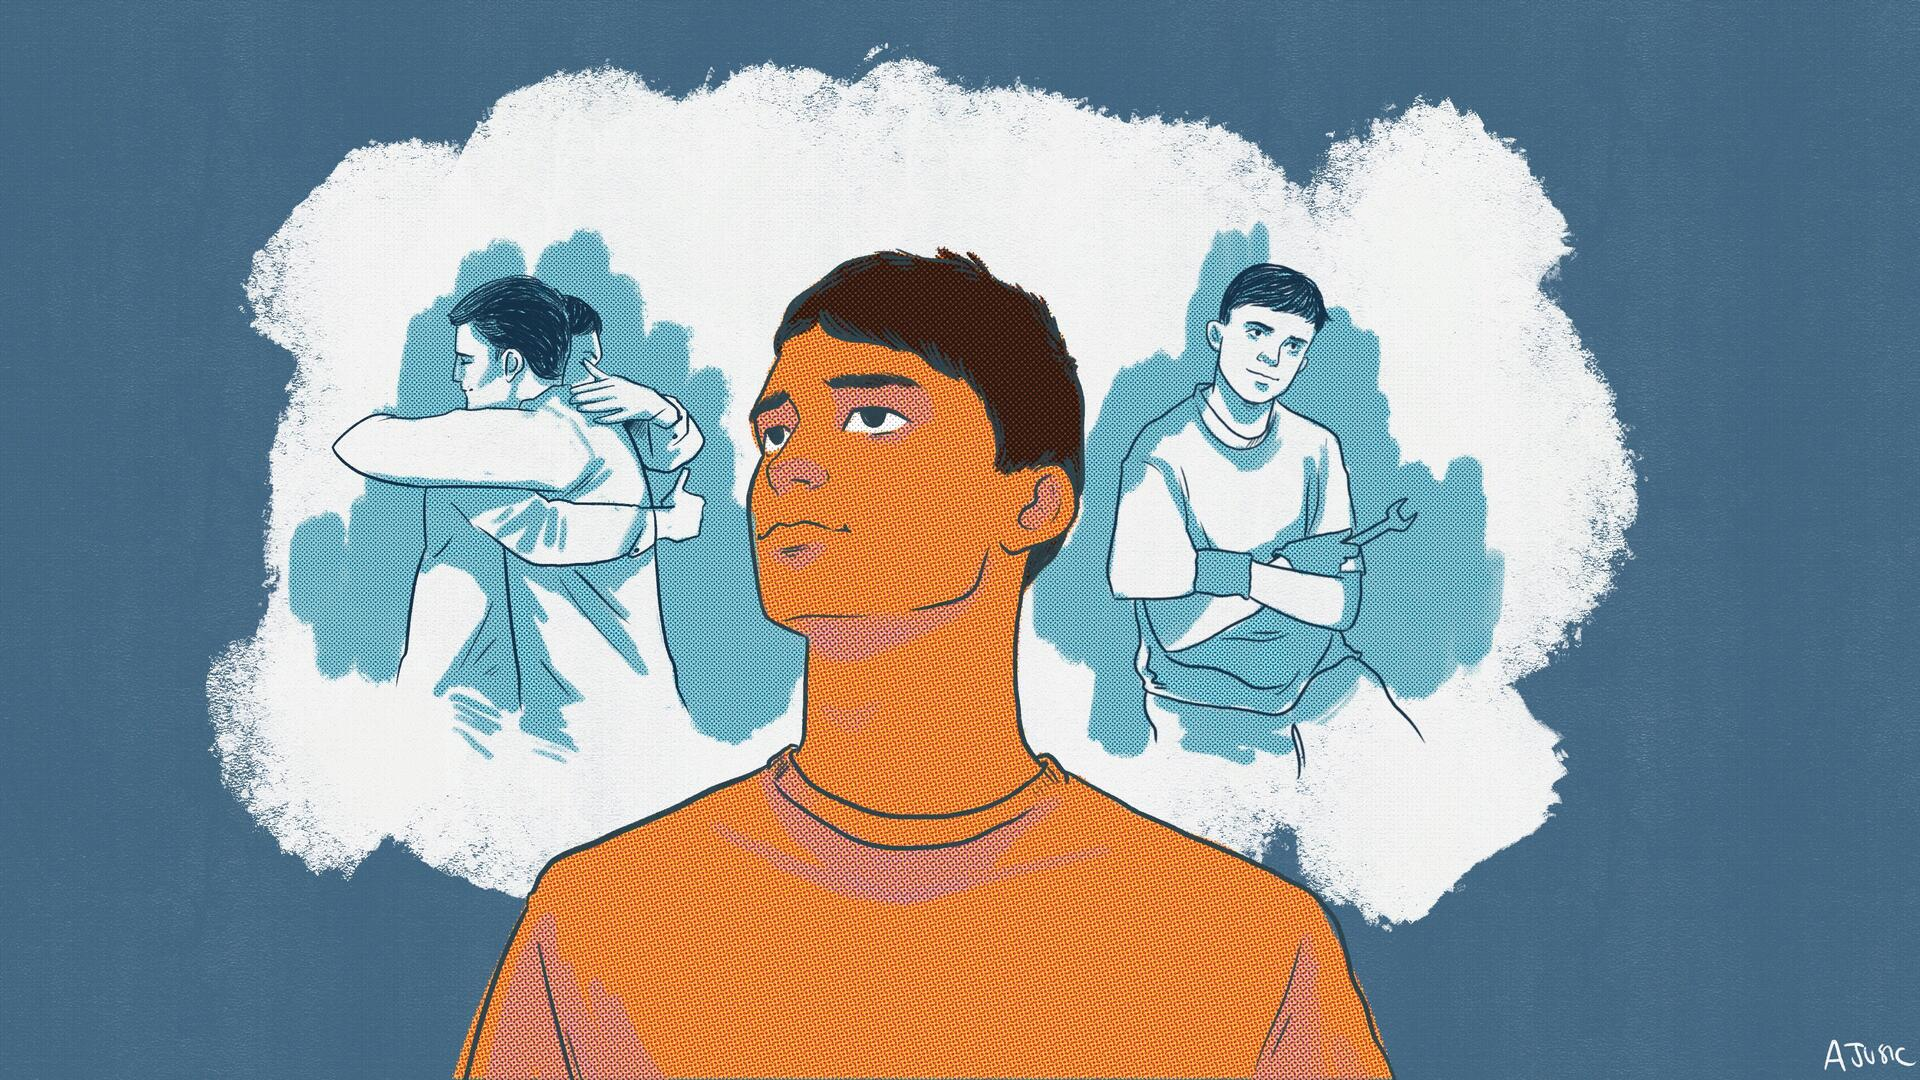 An illustration of 16-yar-old Afghan refugee Ali looking into a bubble that represents his hopes and dreams. In the bubble, his future self is shown hugging his brother and holding a mechanic's wrench.